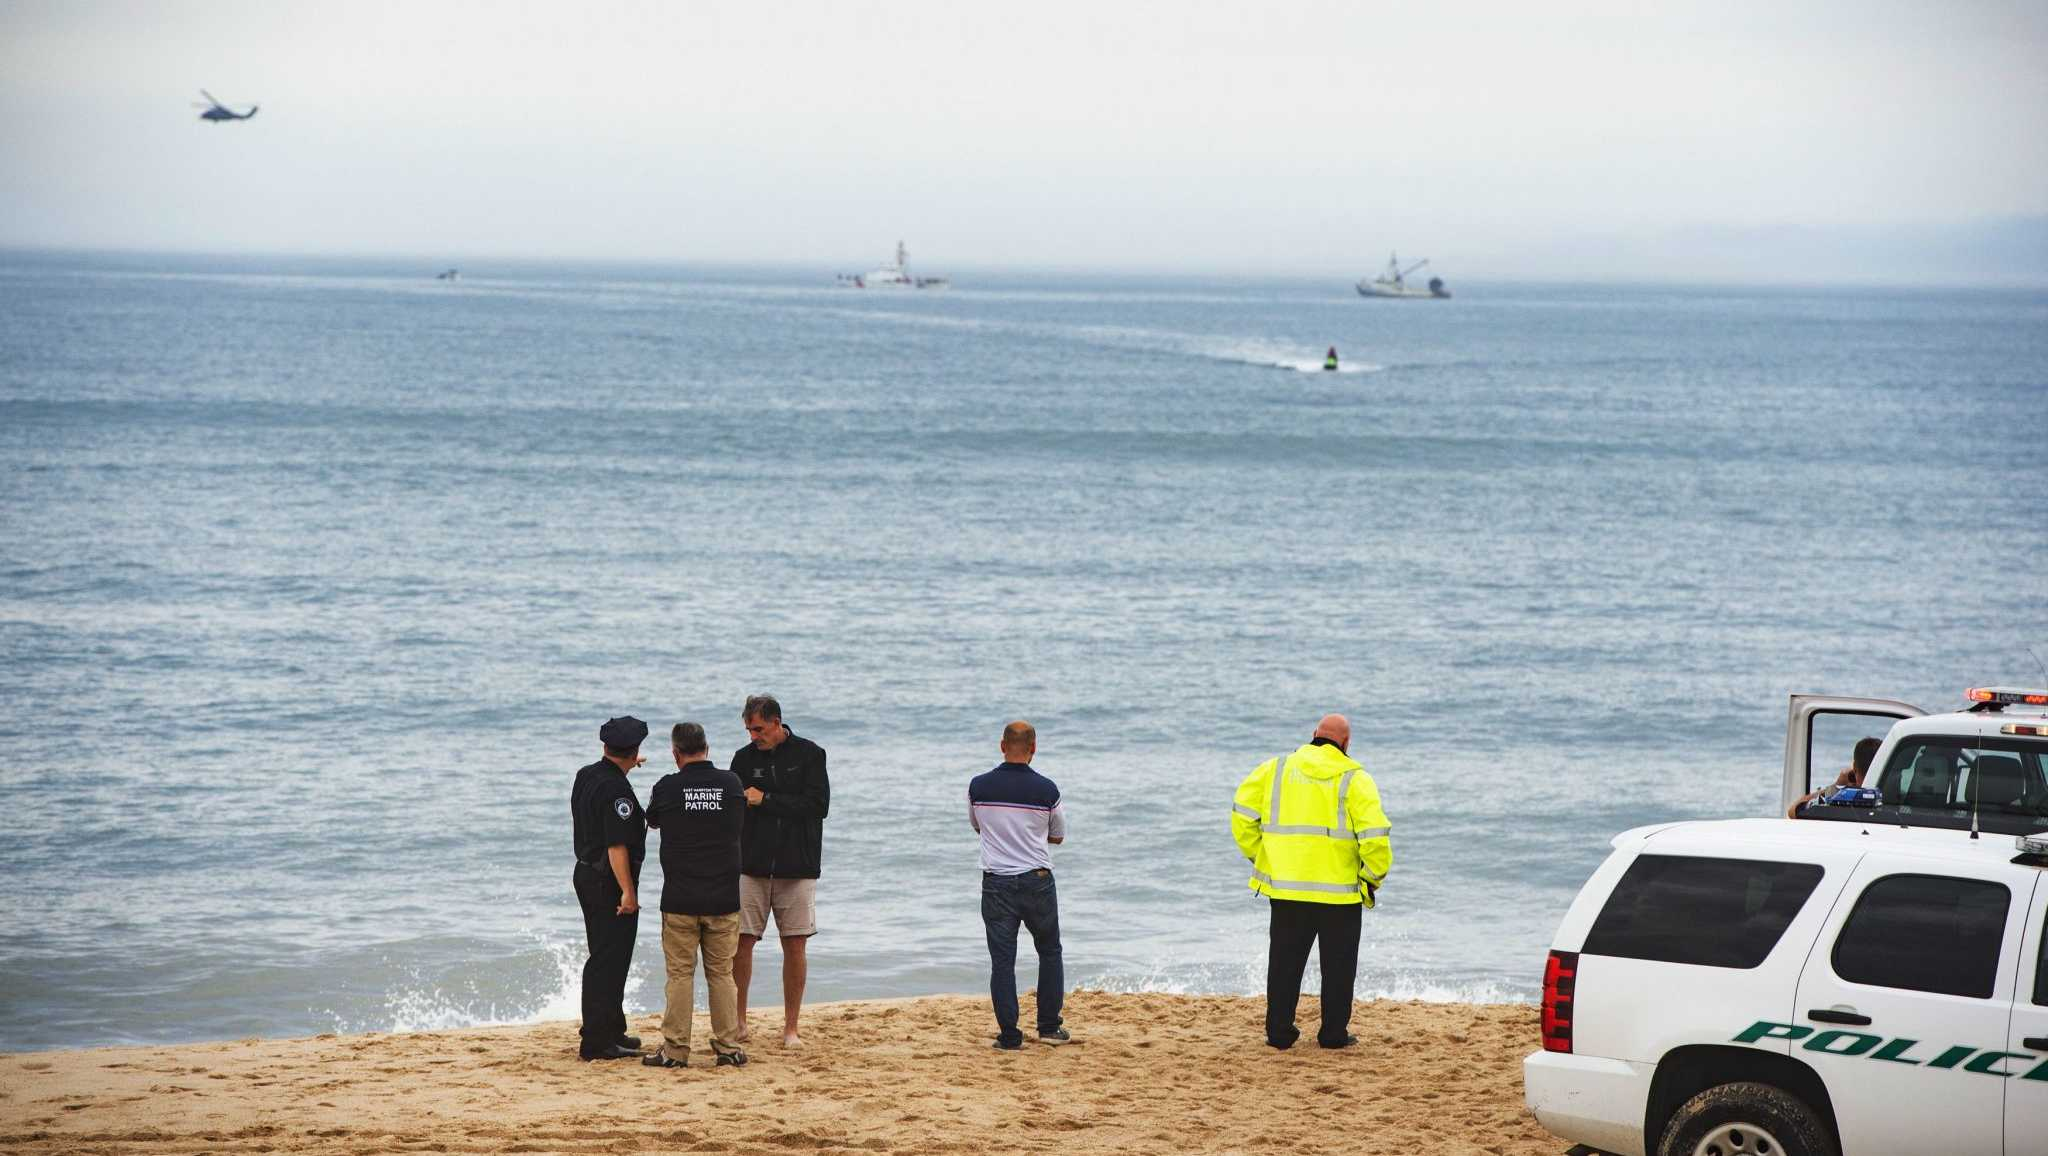 Members of the New York State park police look near the scene of a plane crash in the ocean off Indian Wells Beach in Amagansett, N.Y., Saturday, June 2, 2018.